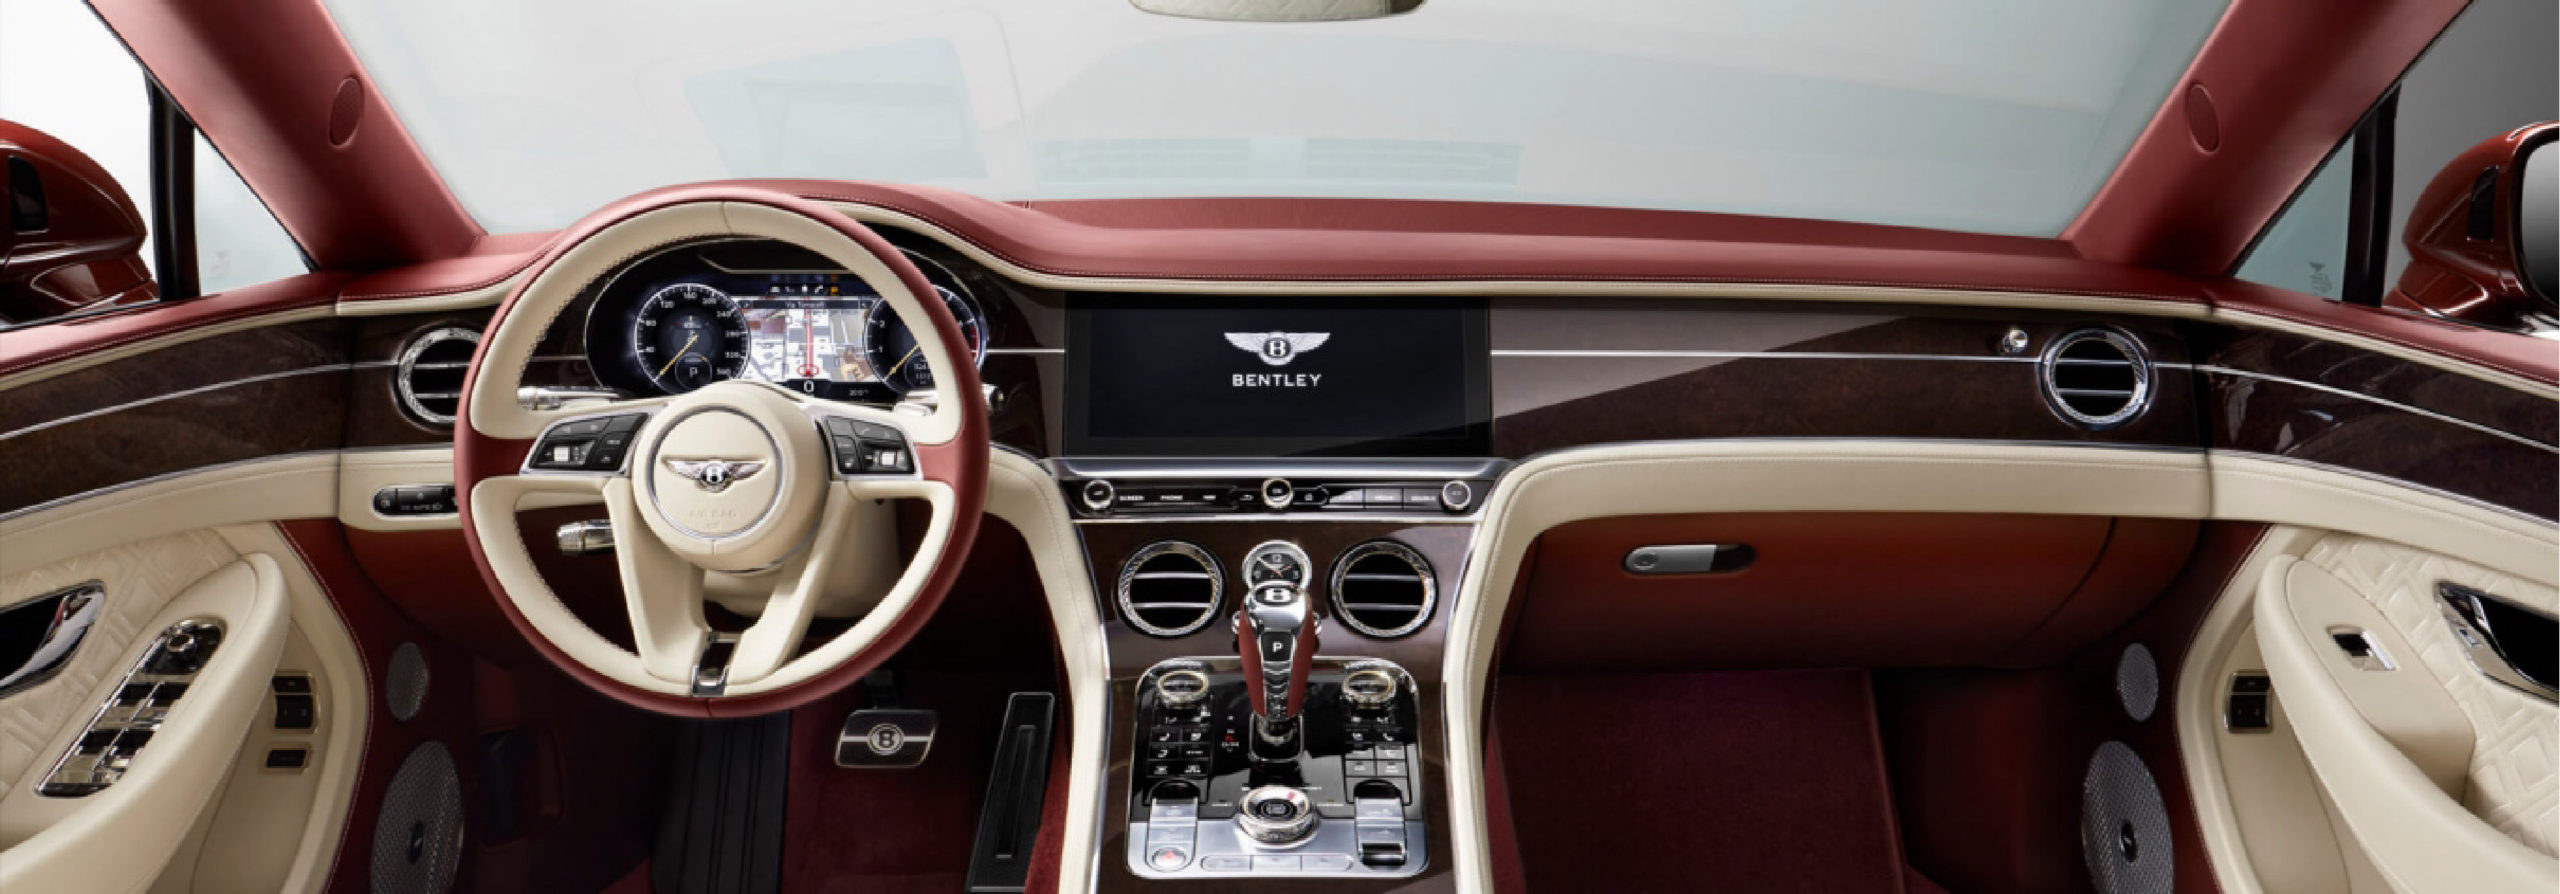 A LUXURIOUS HANDCRAFTED INTERIOR